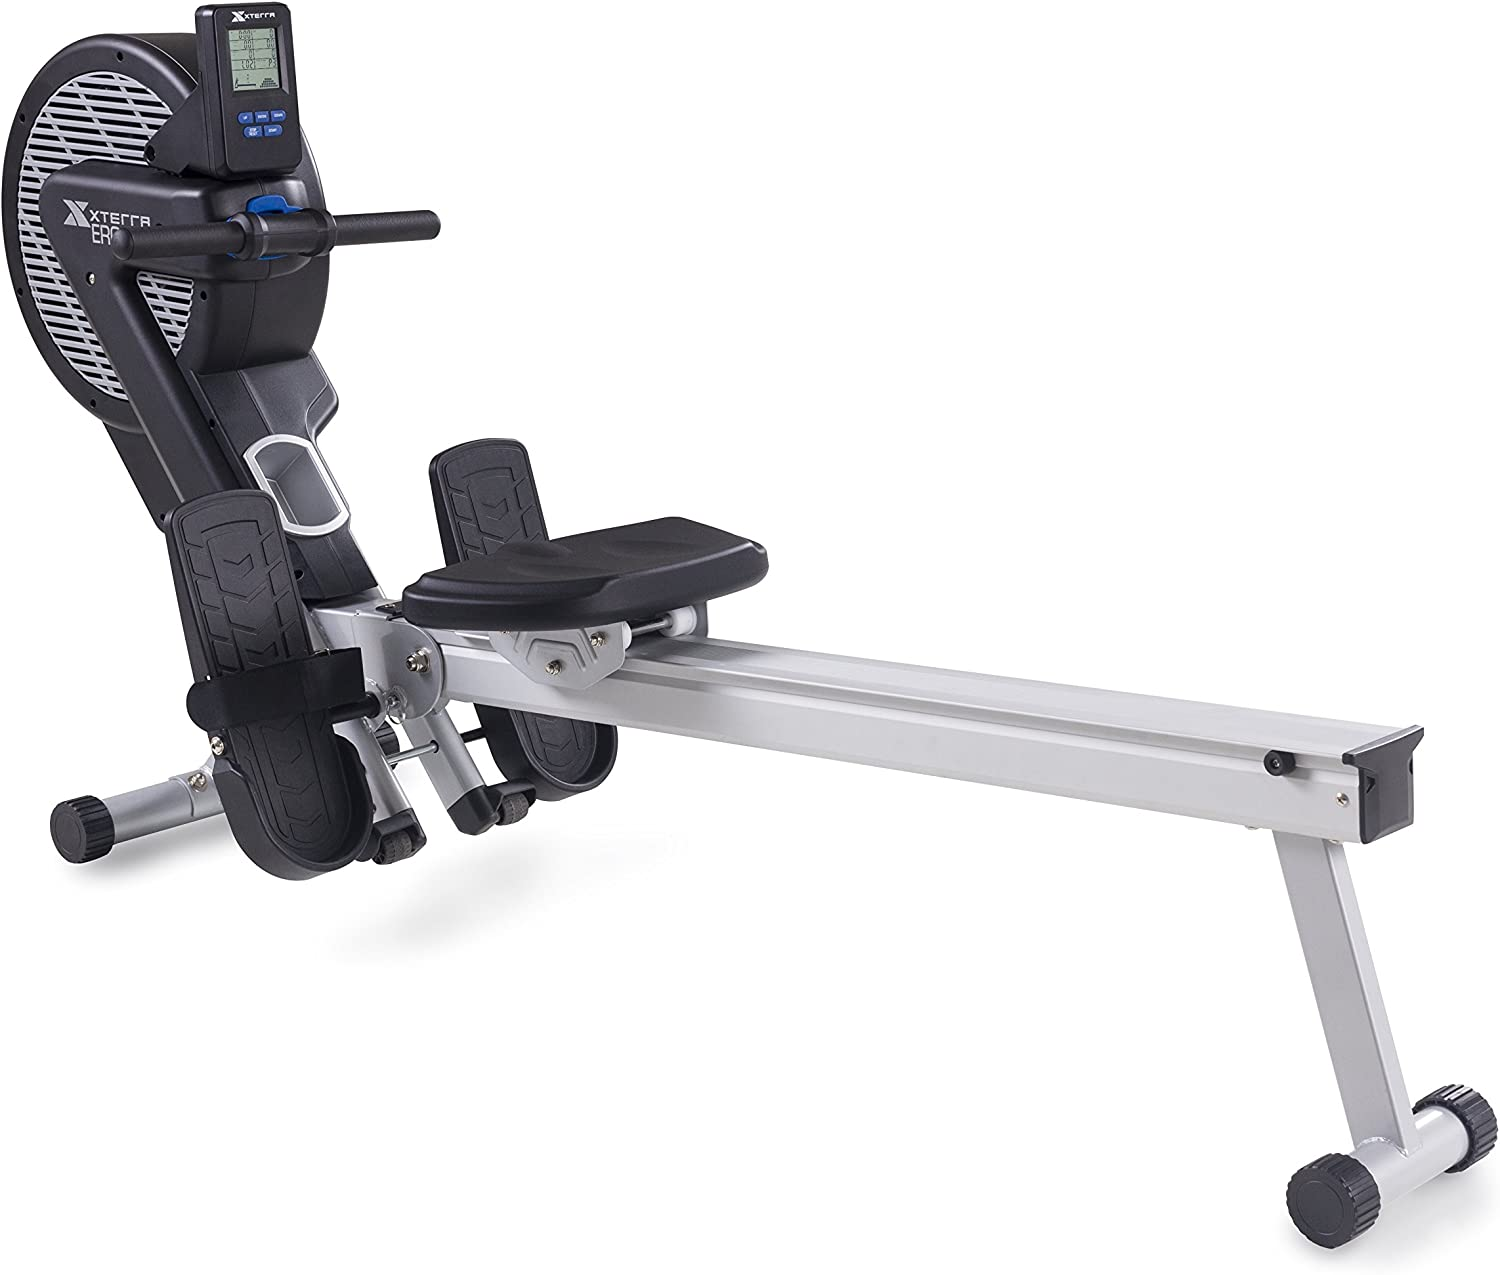 Xterra ERG400 Rower Review – Air & Magnetic Resistance Folding Rower